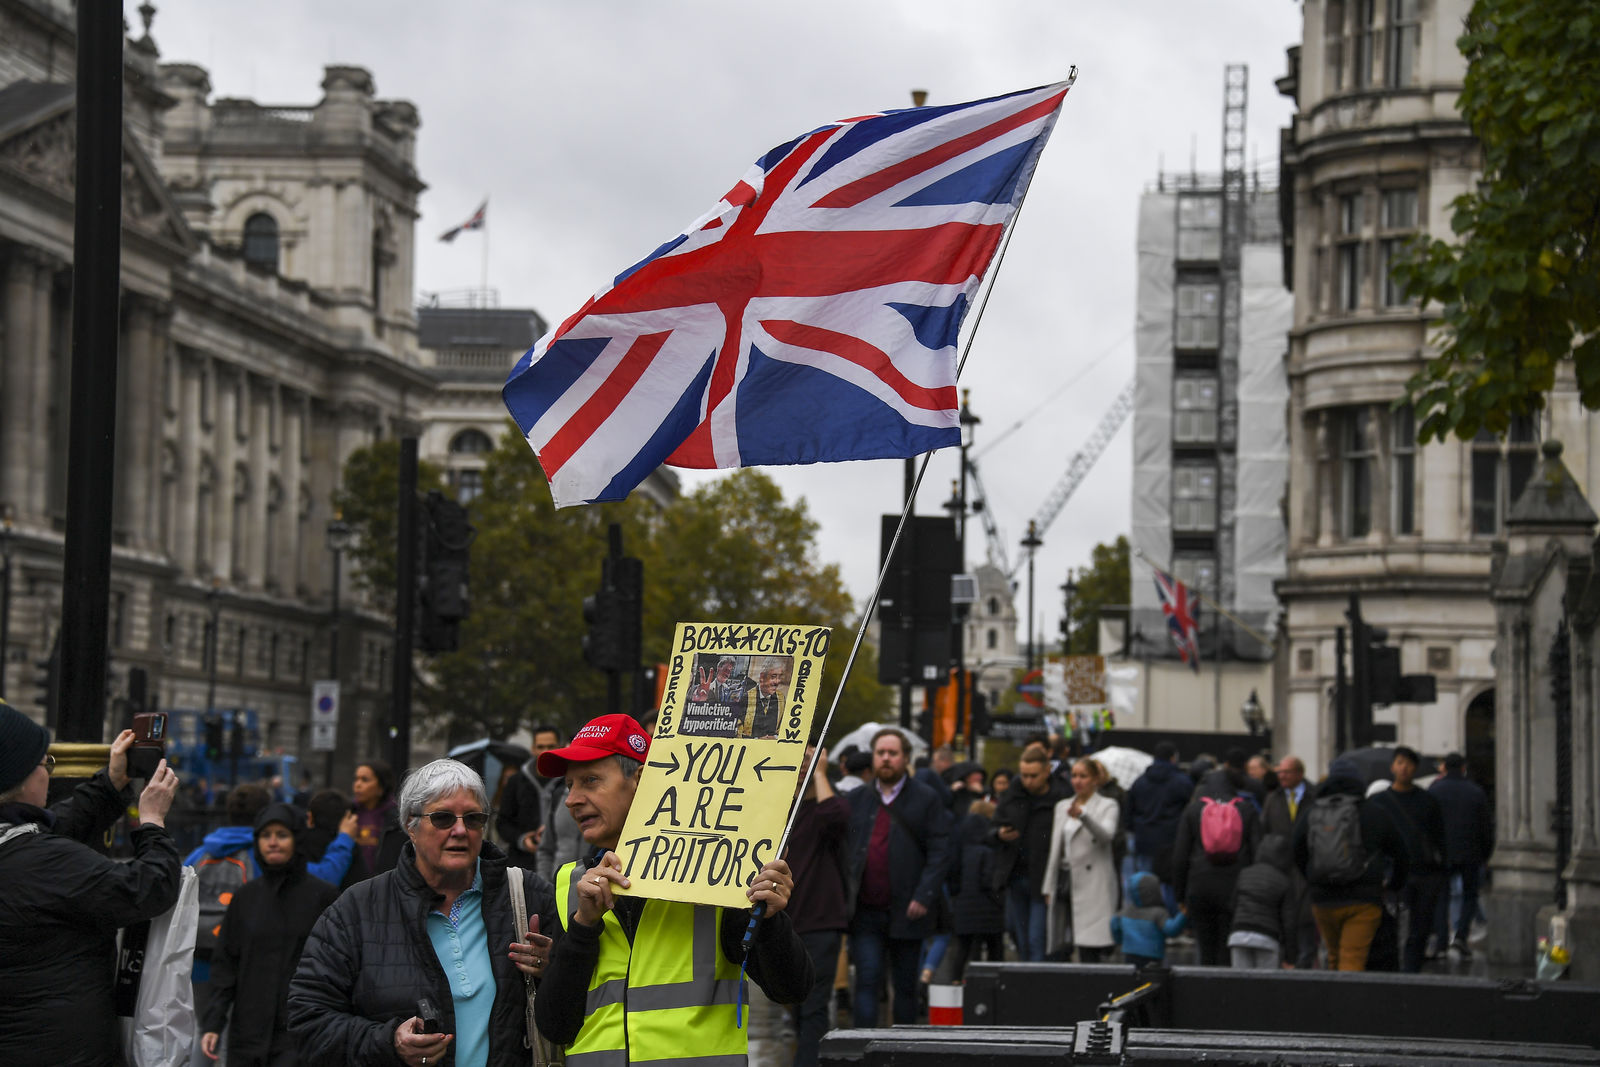 A pro Brexit demonstrator protests outside the Houses of Parliament, holding a placard and a Union flag, in London, Monday, Oct. 21, 2019. (AP Photo/Alberto Pezzali)